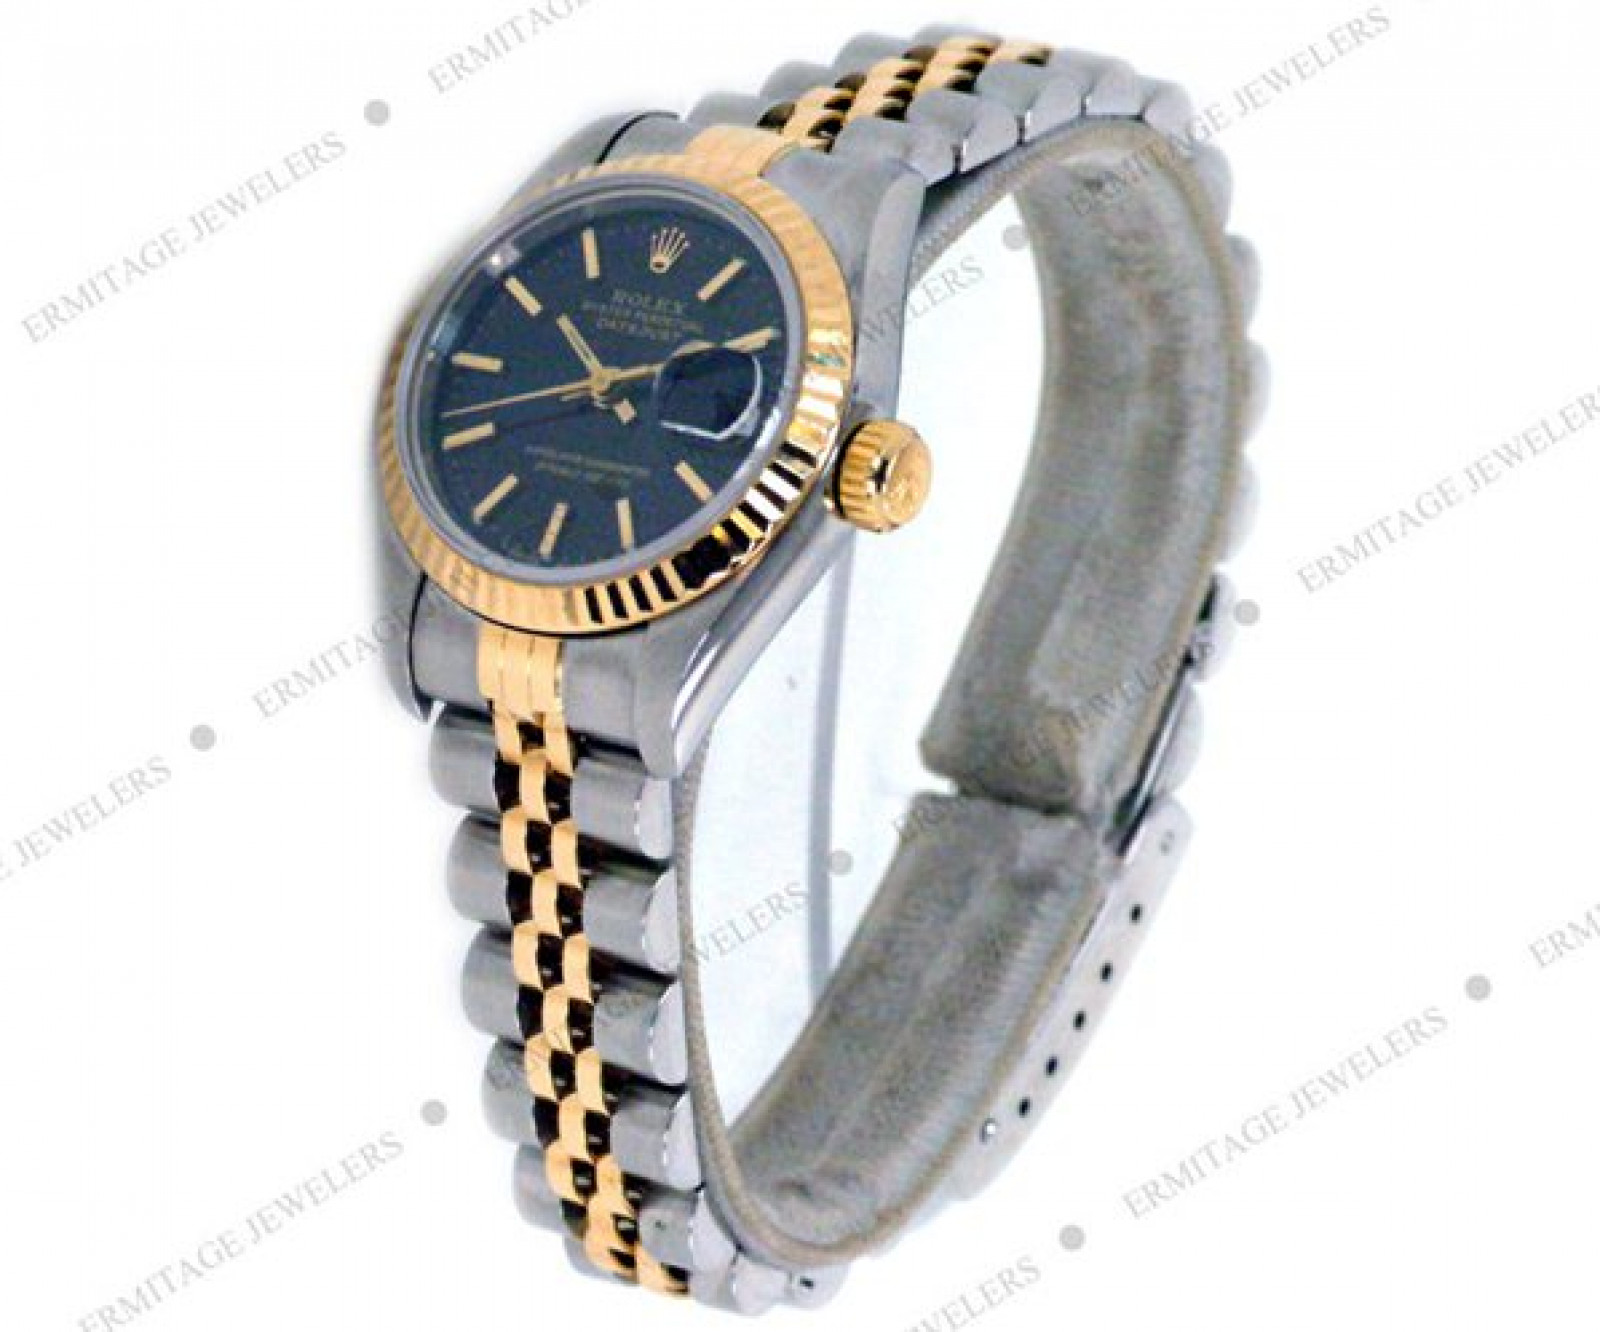 Authentic Used Rolex Datejust Ref 69173 Gold & Steel